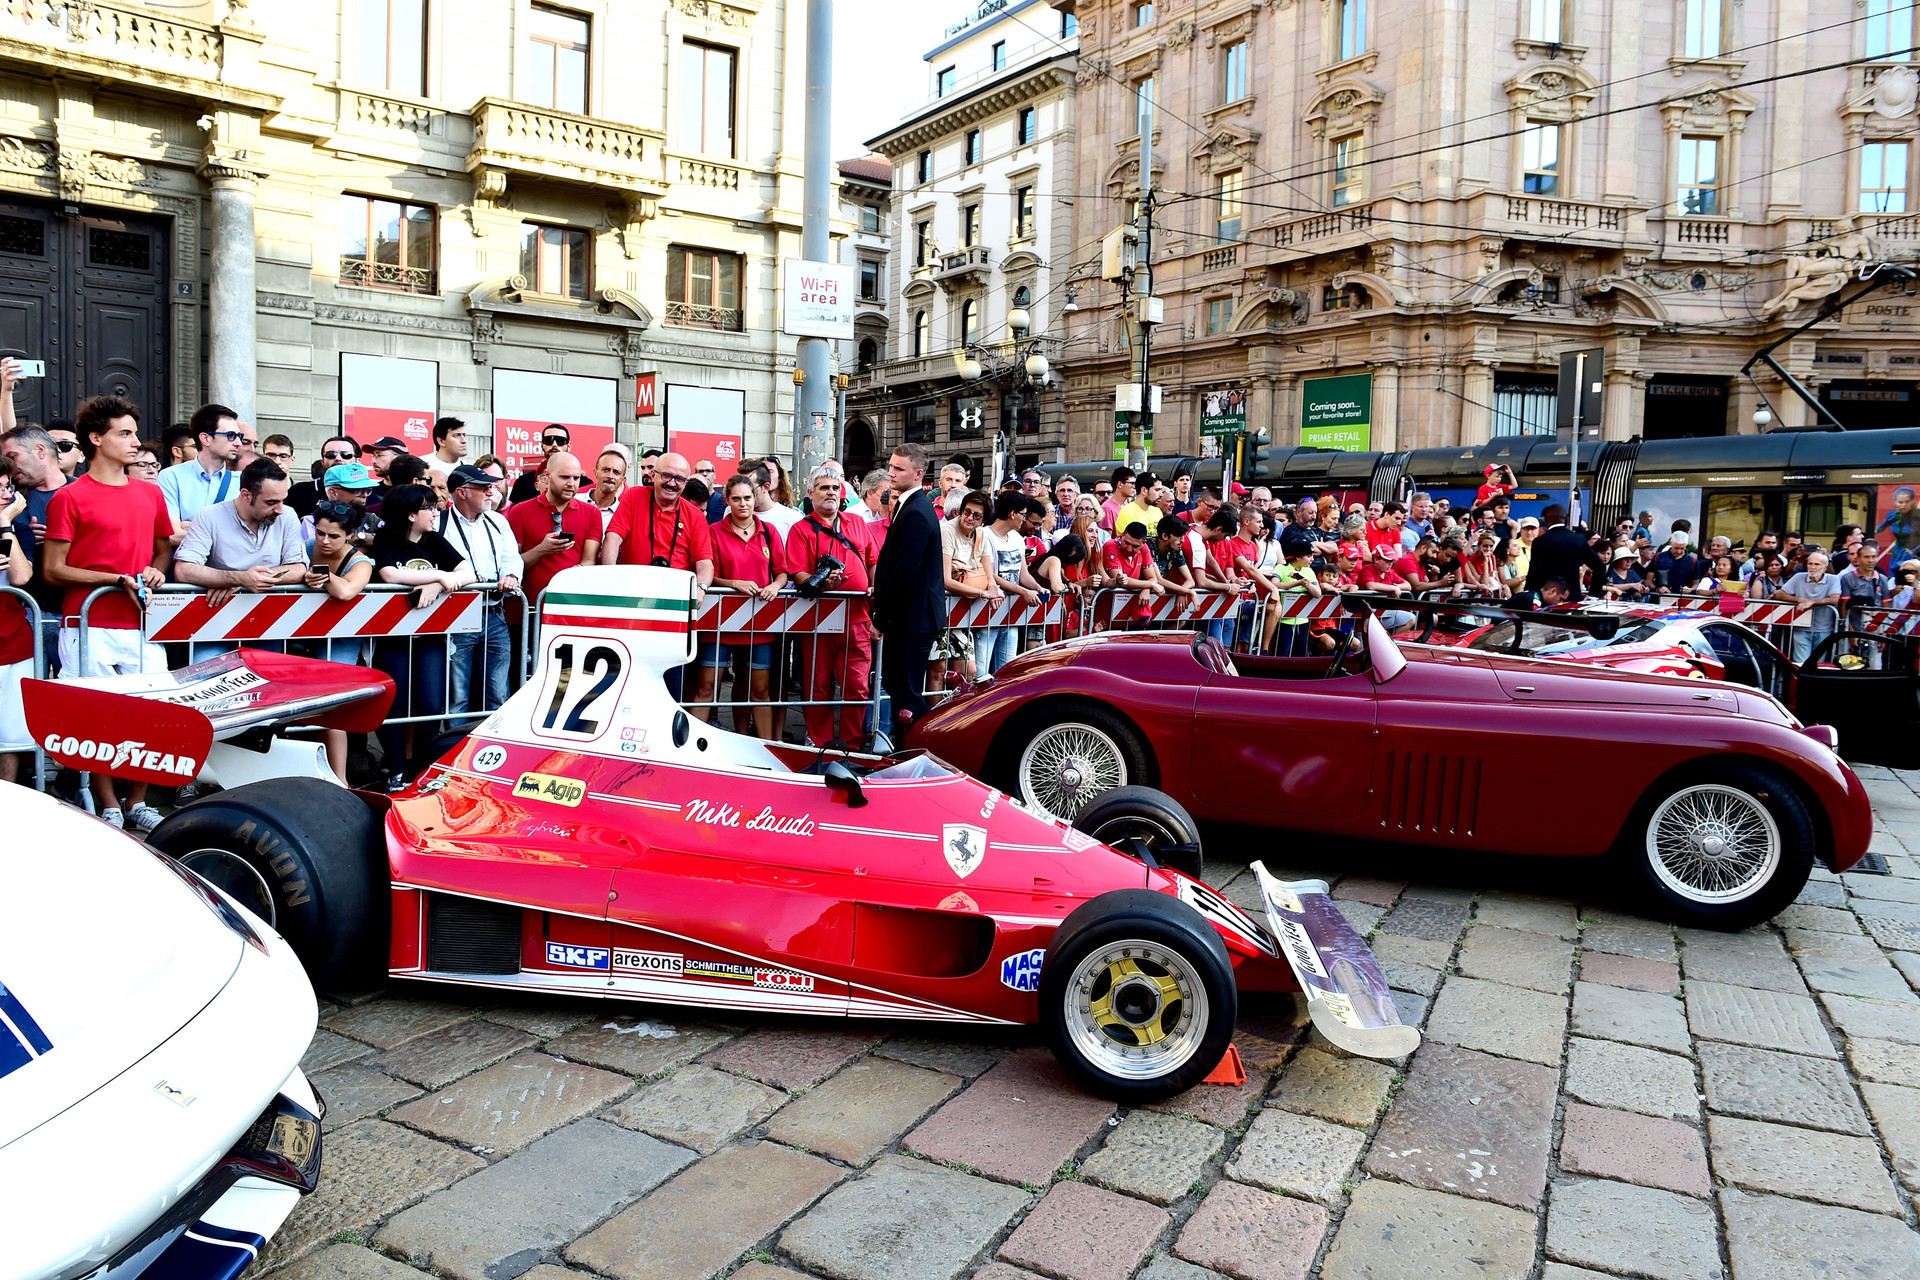 2019 Ferrari 90 Years celebration at Milan | 4 Sept 2019 website 26.jpg